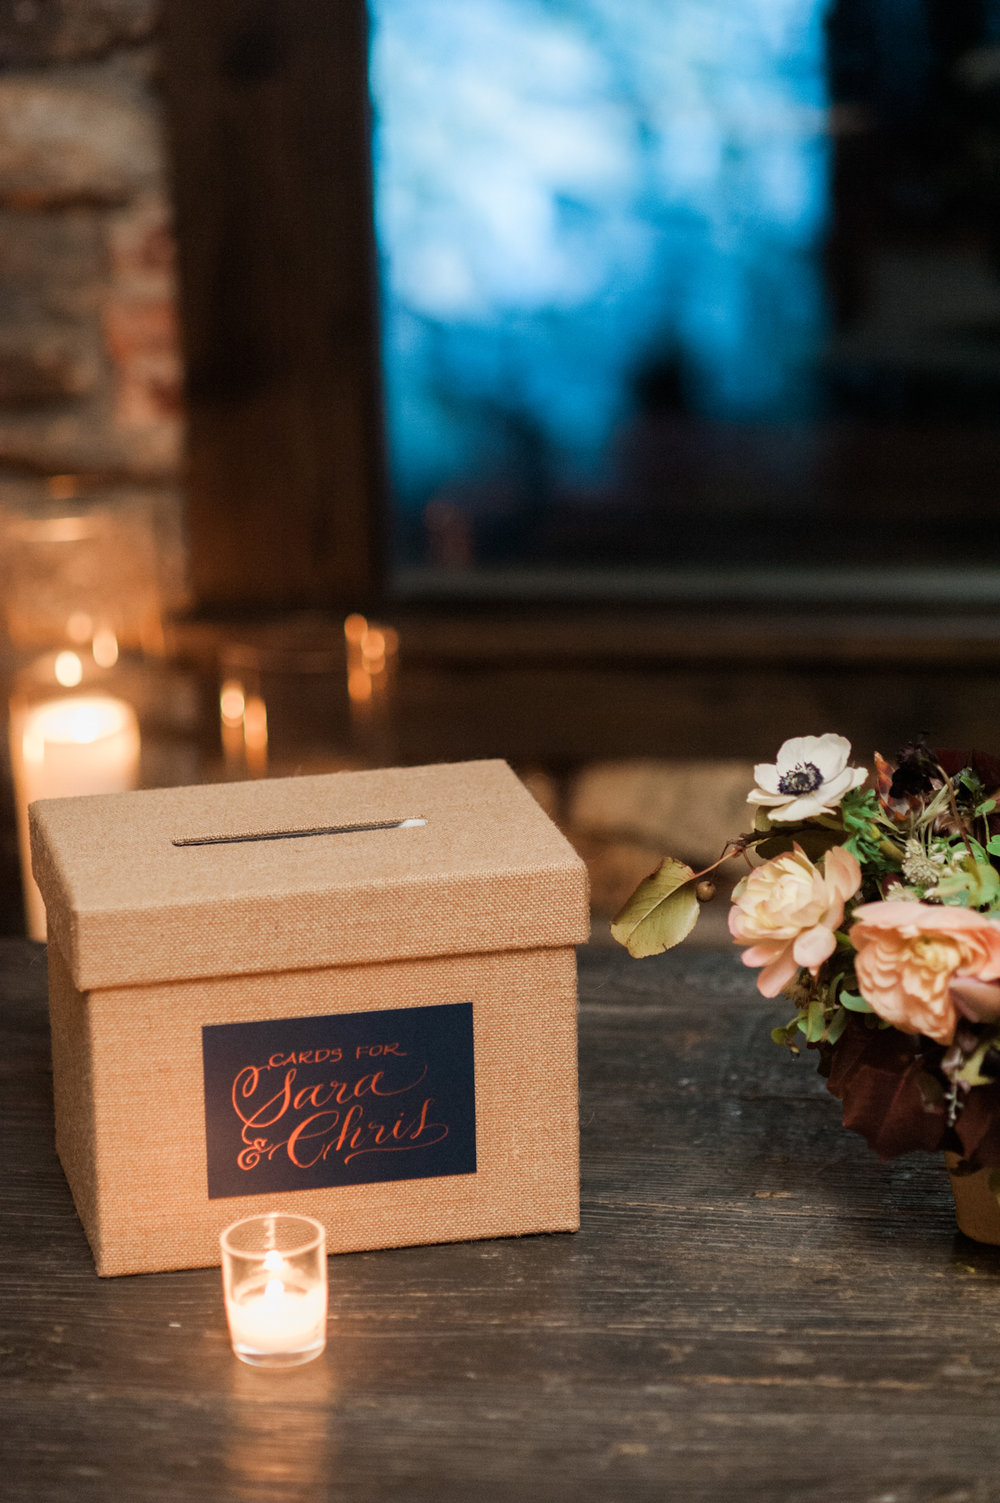 Blue Hill at Stone Barns wedding, event planner Ang Weddings and Events, photography Judy Pak, gift card box